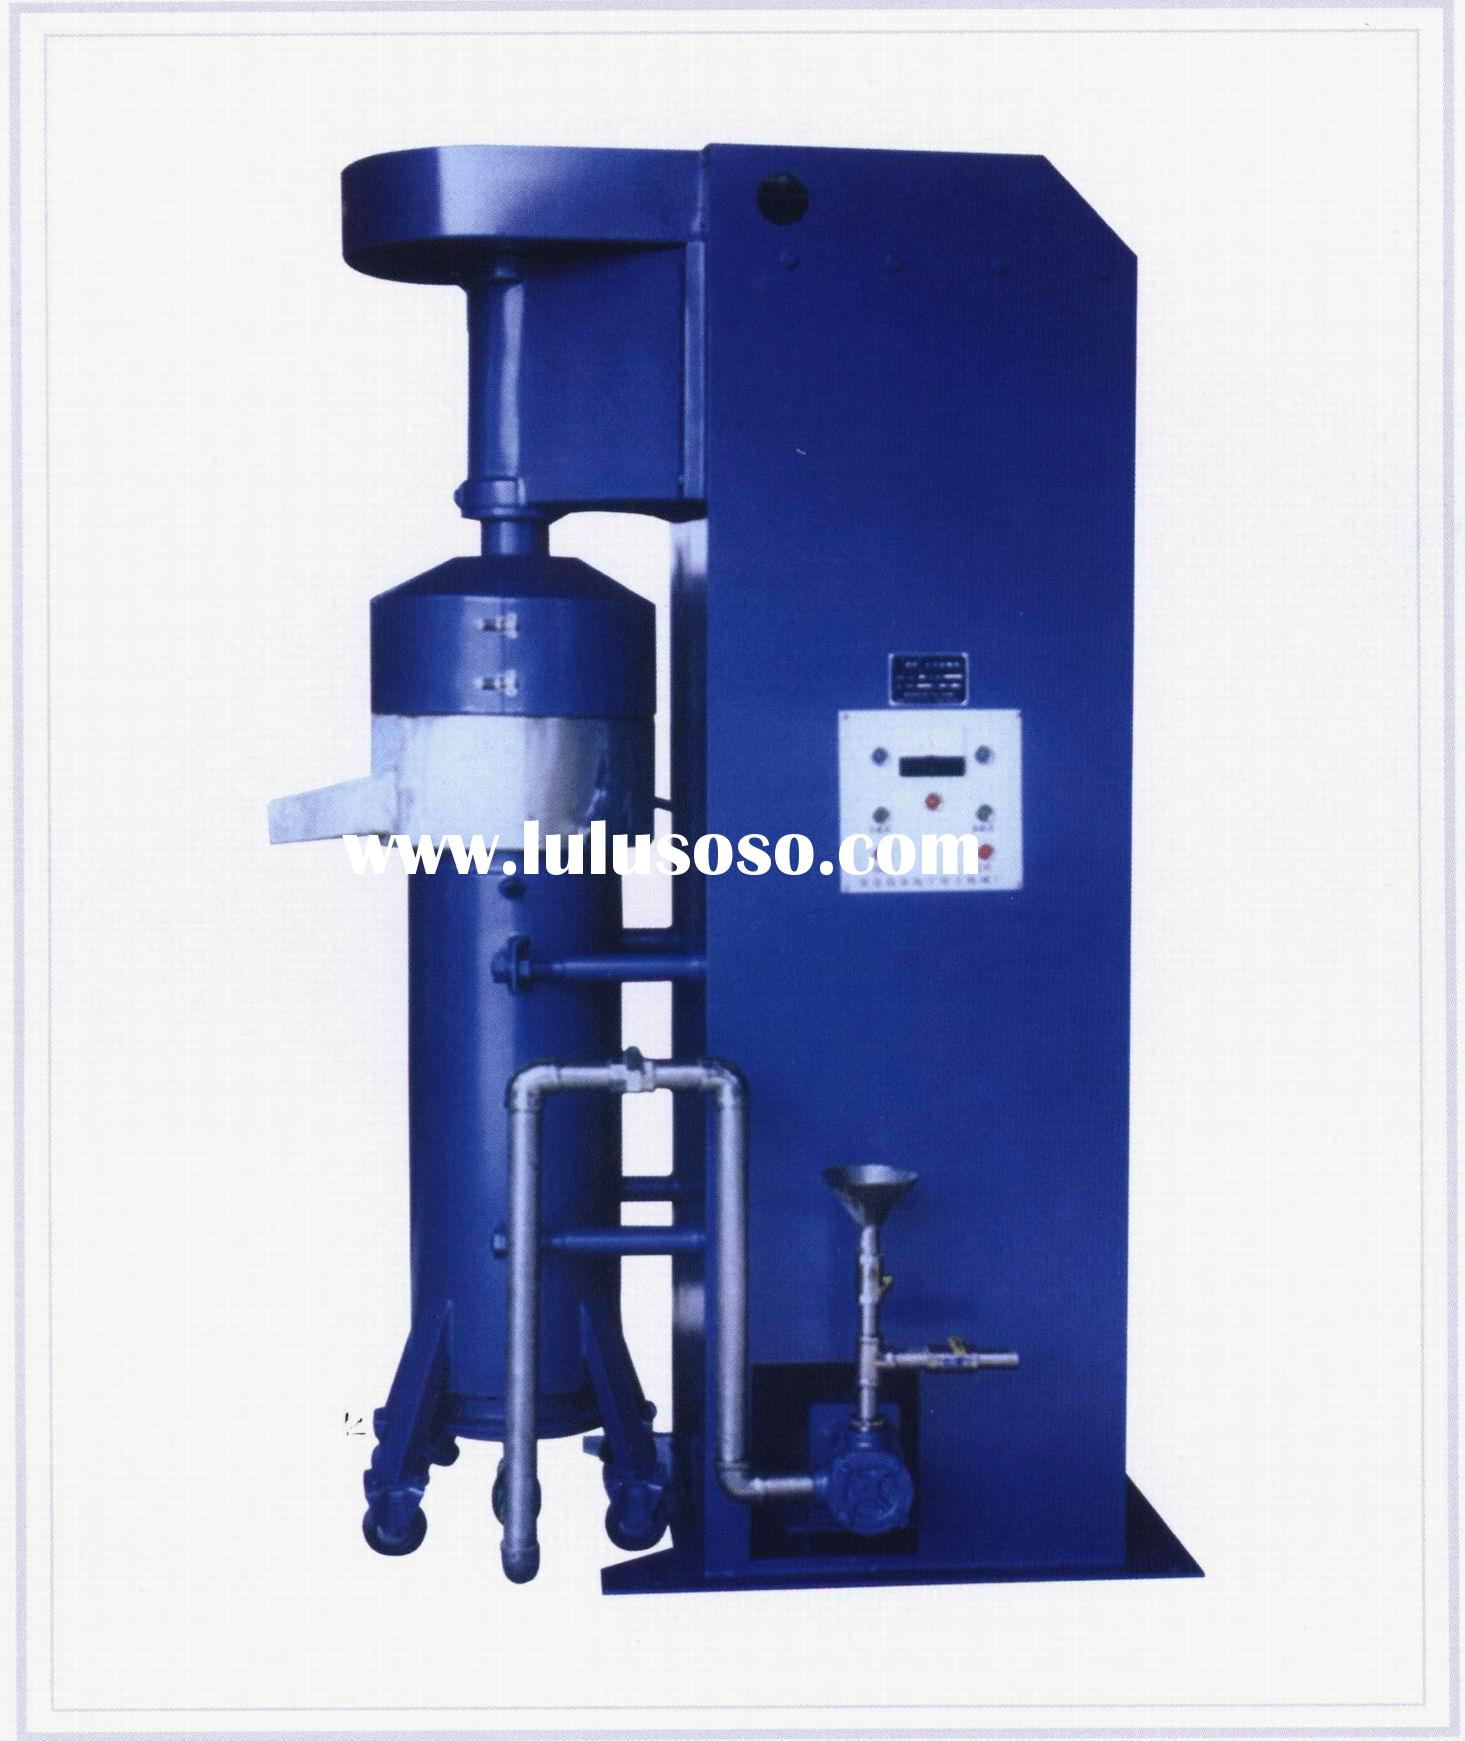 sell paint making equipment, mixers and dispersers, grinding machines